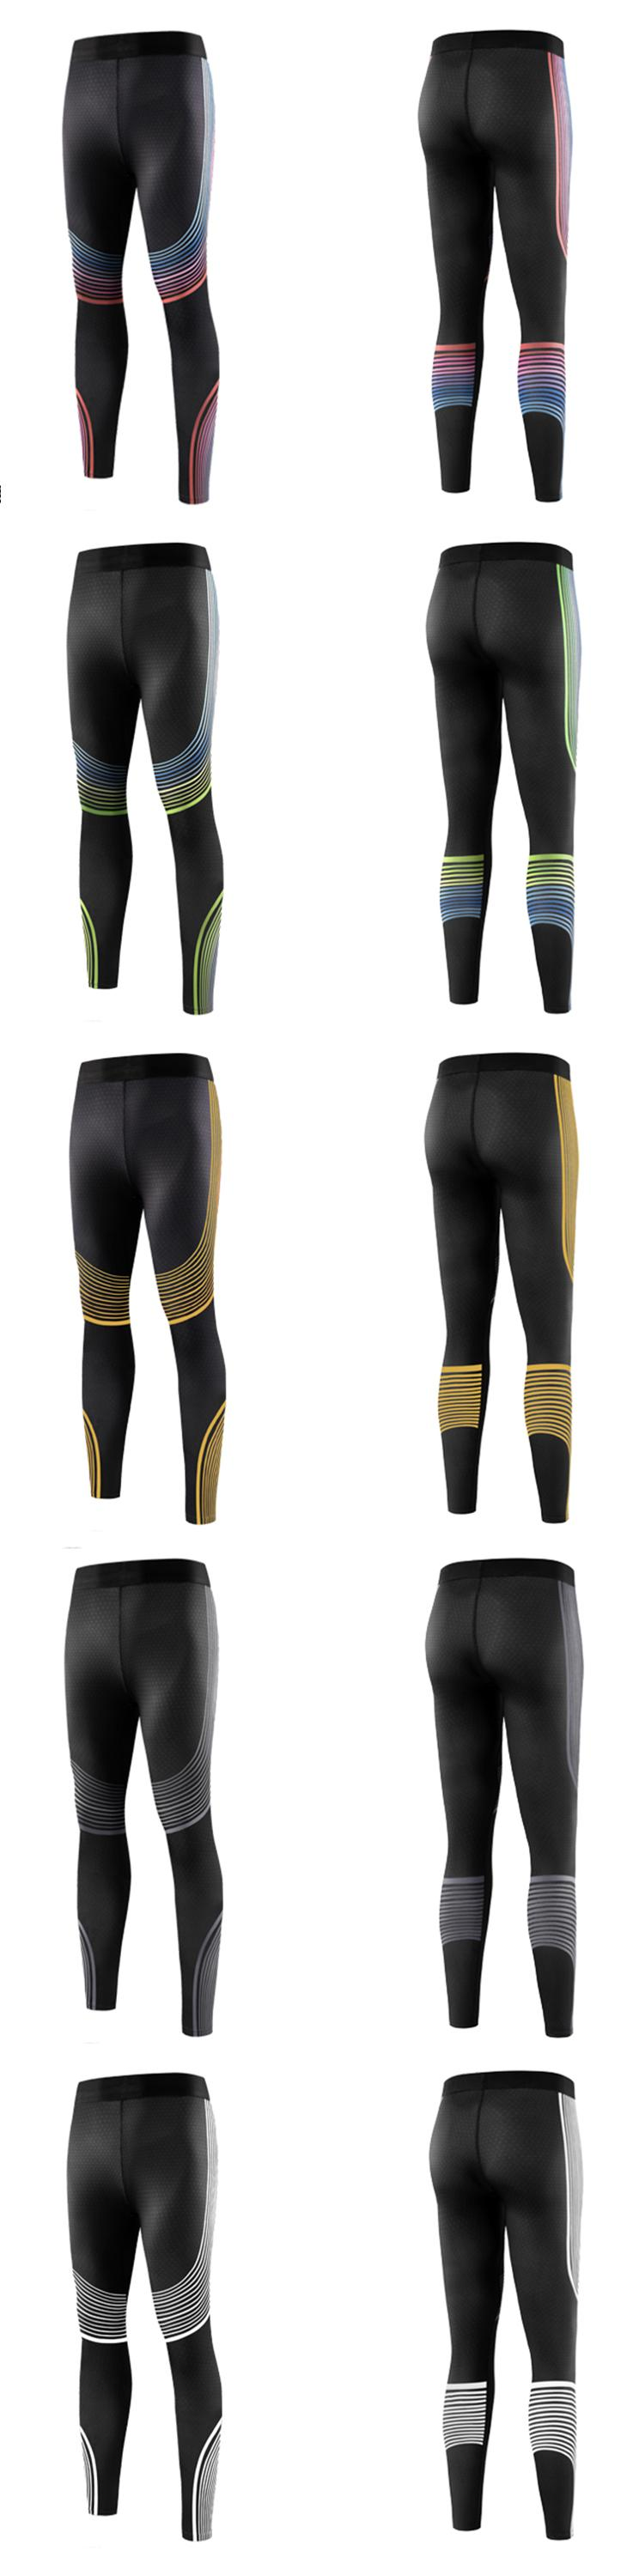 Custom ladies sport yoga pants tights women fitness high waisted gym leggings